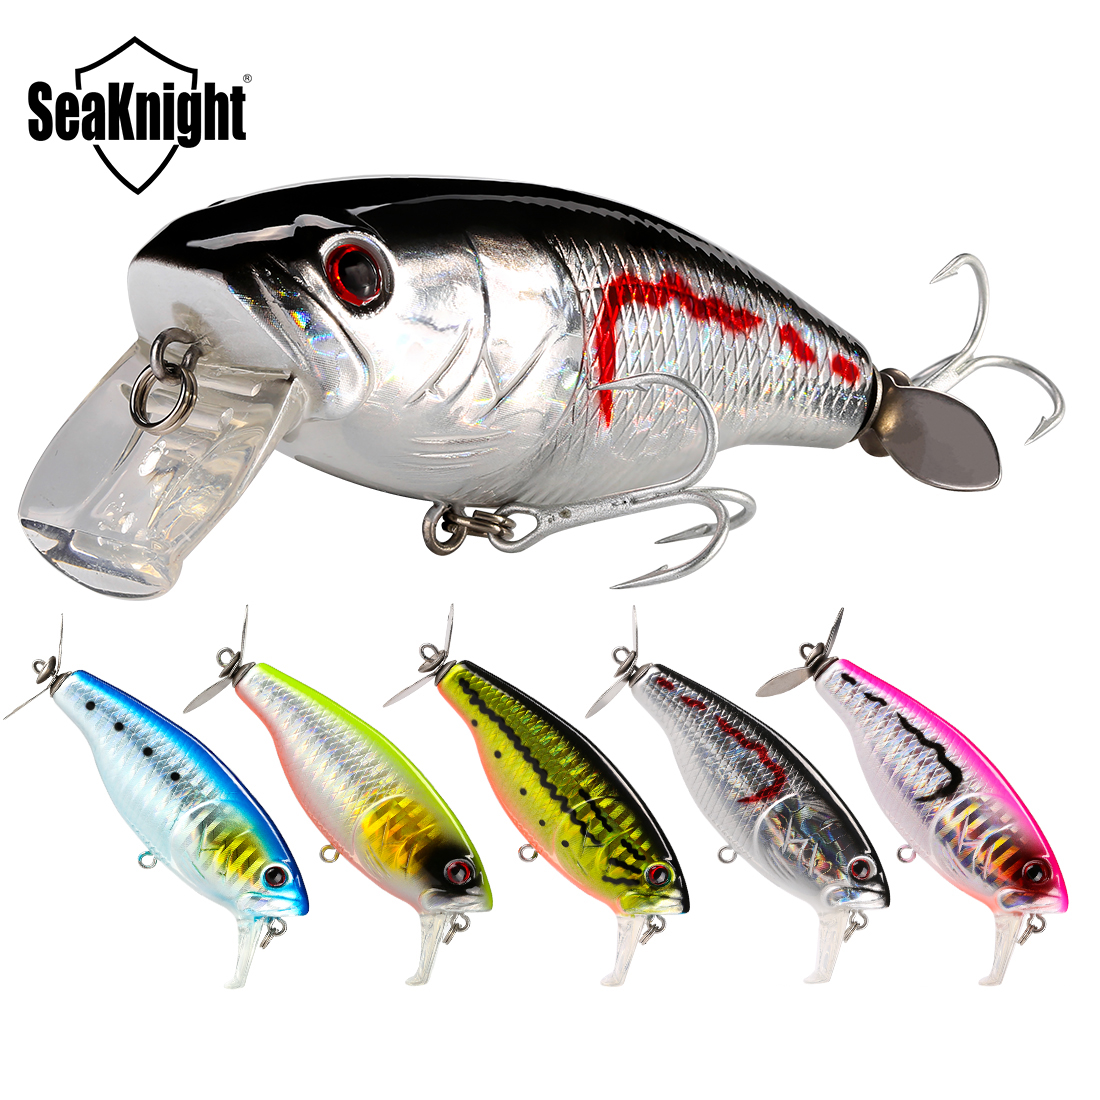 SeaKnight SK047 Minnow 14.5g 72mm 0-0.5M Floating Fishing Lure 5PCS/Lot Artificial Baits VMC Hooks Propeller Tail Fishing Baits